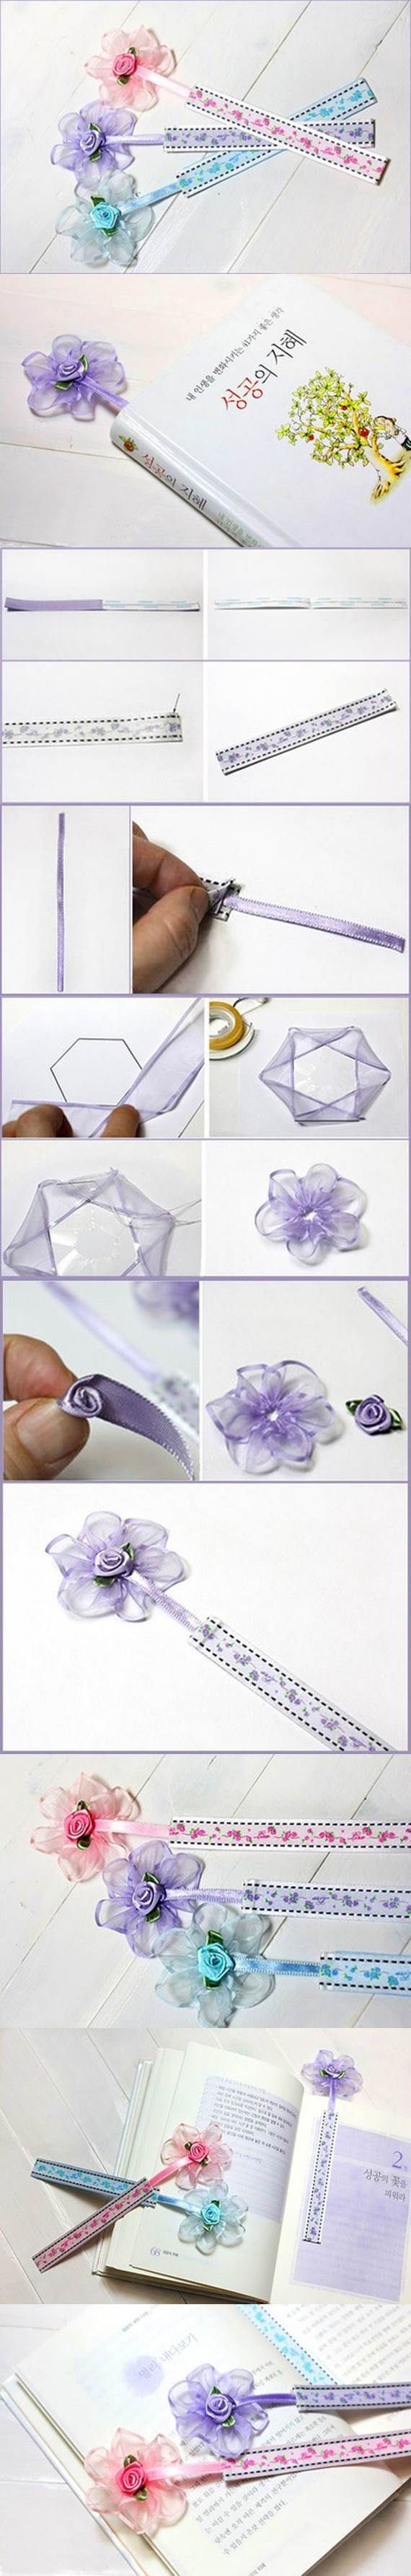 DIY Beautiful Ribbon Flower Bookmarks 2 http://www.icreativeideas.com/diy-beautiful-ribbon-flower-bookmarks/